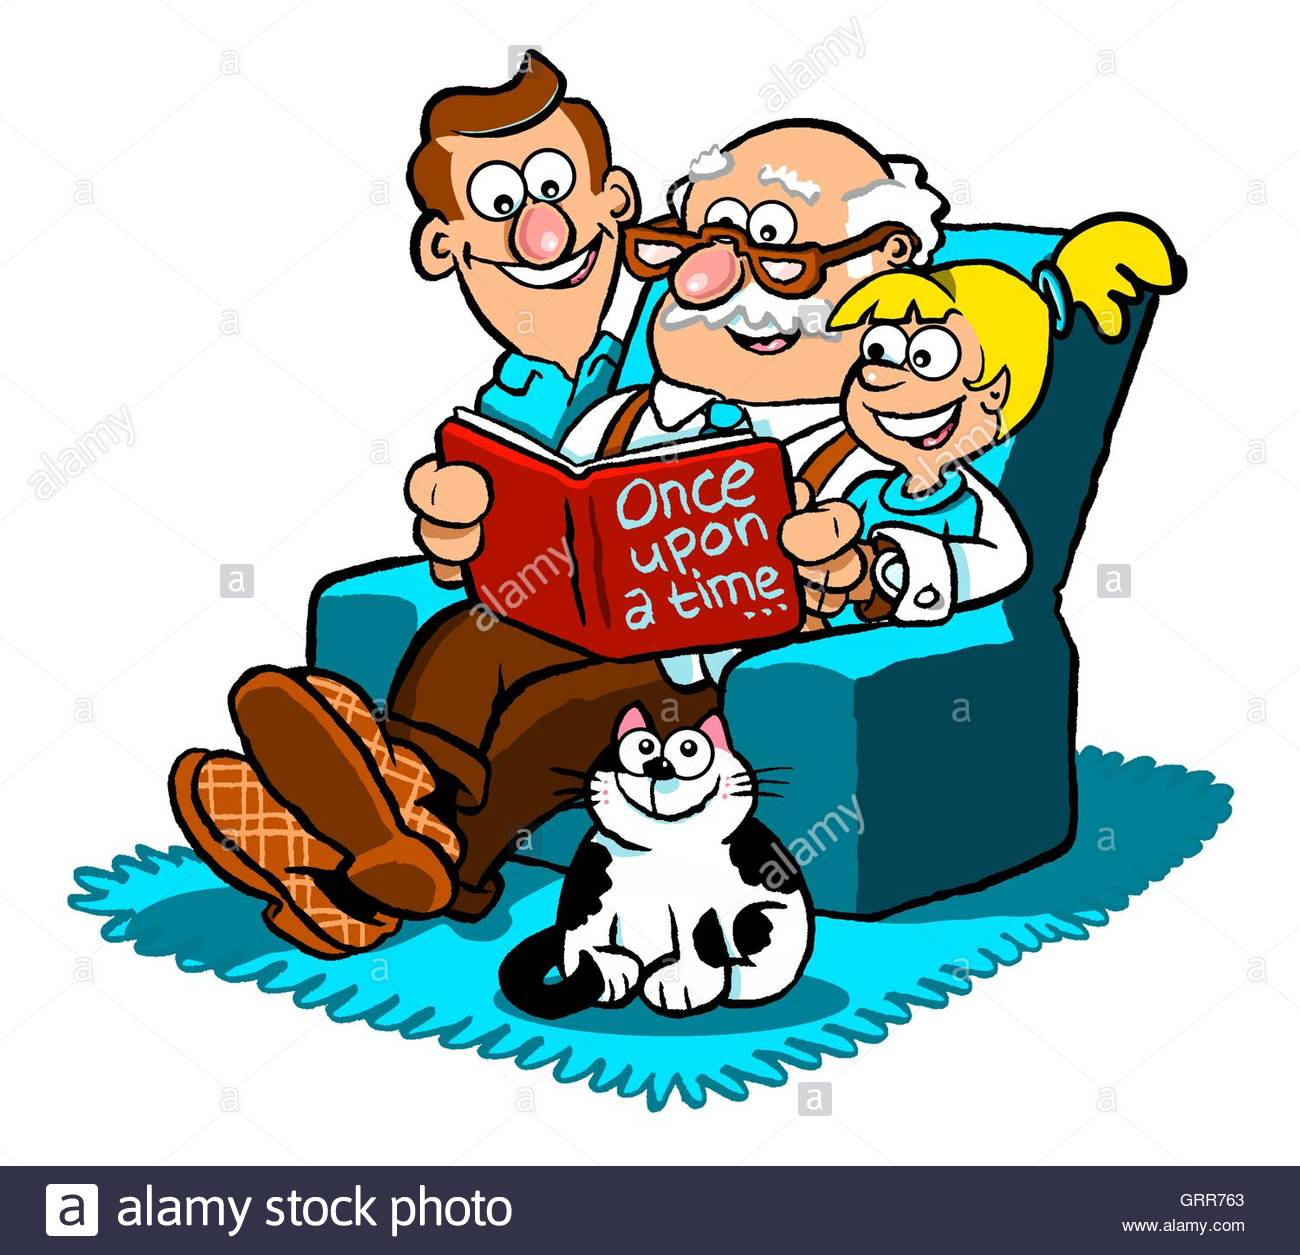 cartoon grandfather stockfotos cartoon grandfather bilder alamy. Black Bedroom Furniture Sets. Home Design Ideas